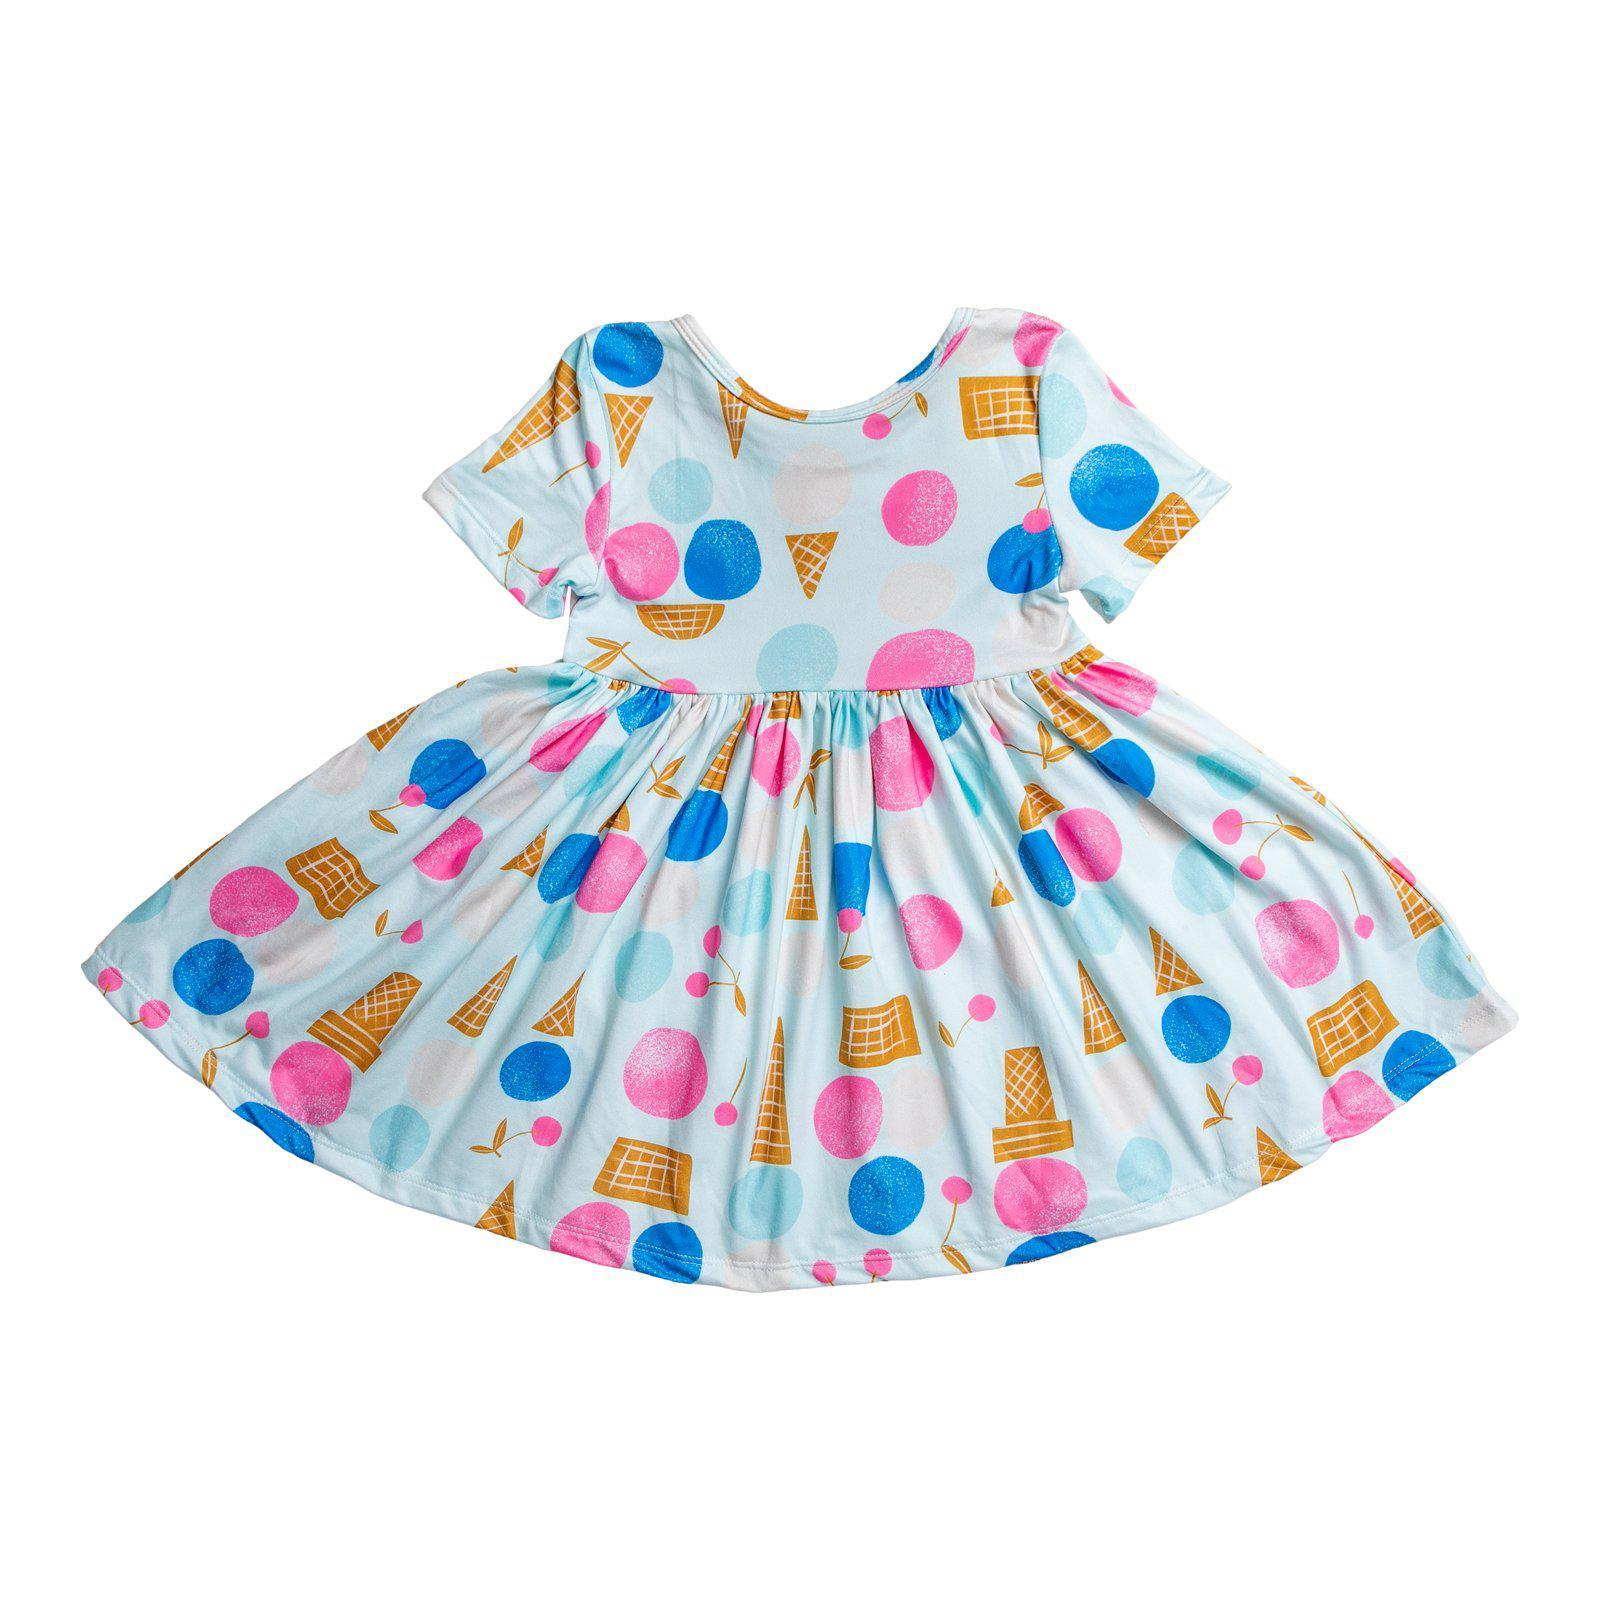 We All Scream Short Sleeve Twirl Dress